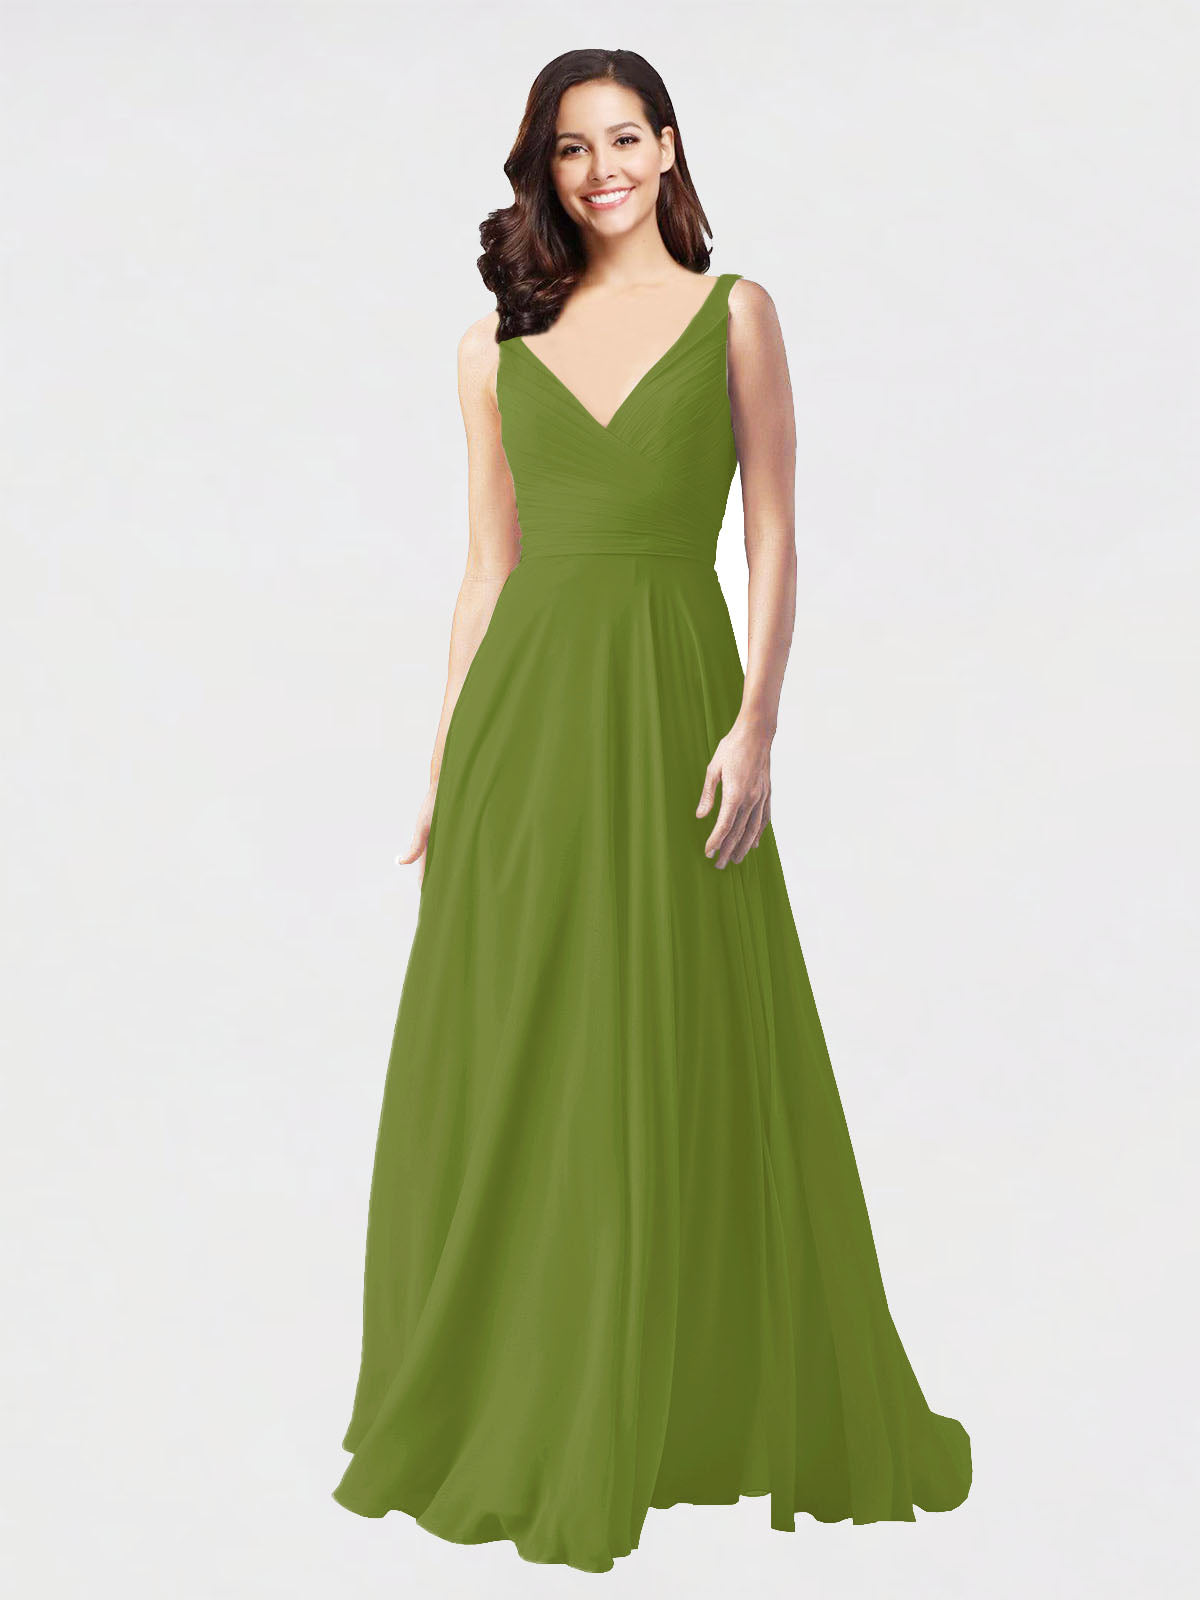 Long A-Line V-Neck Sleeveless Olive Green Chiffon Bridesmaid Dress Bernice